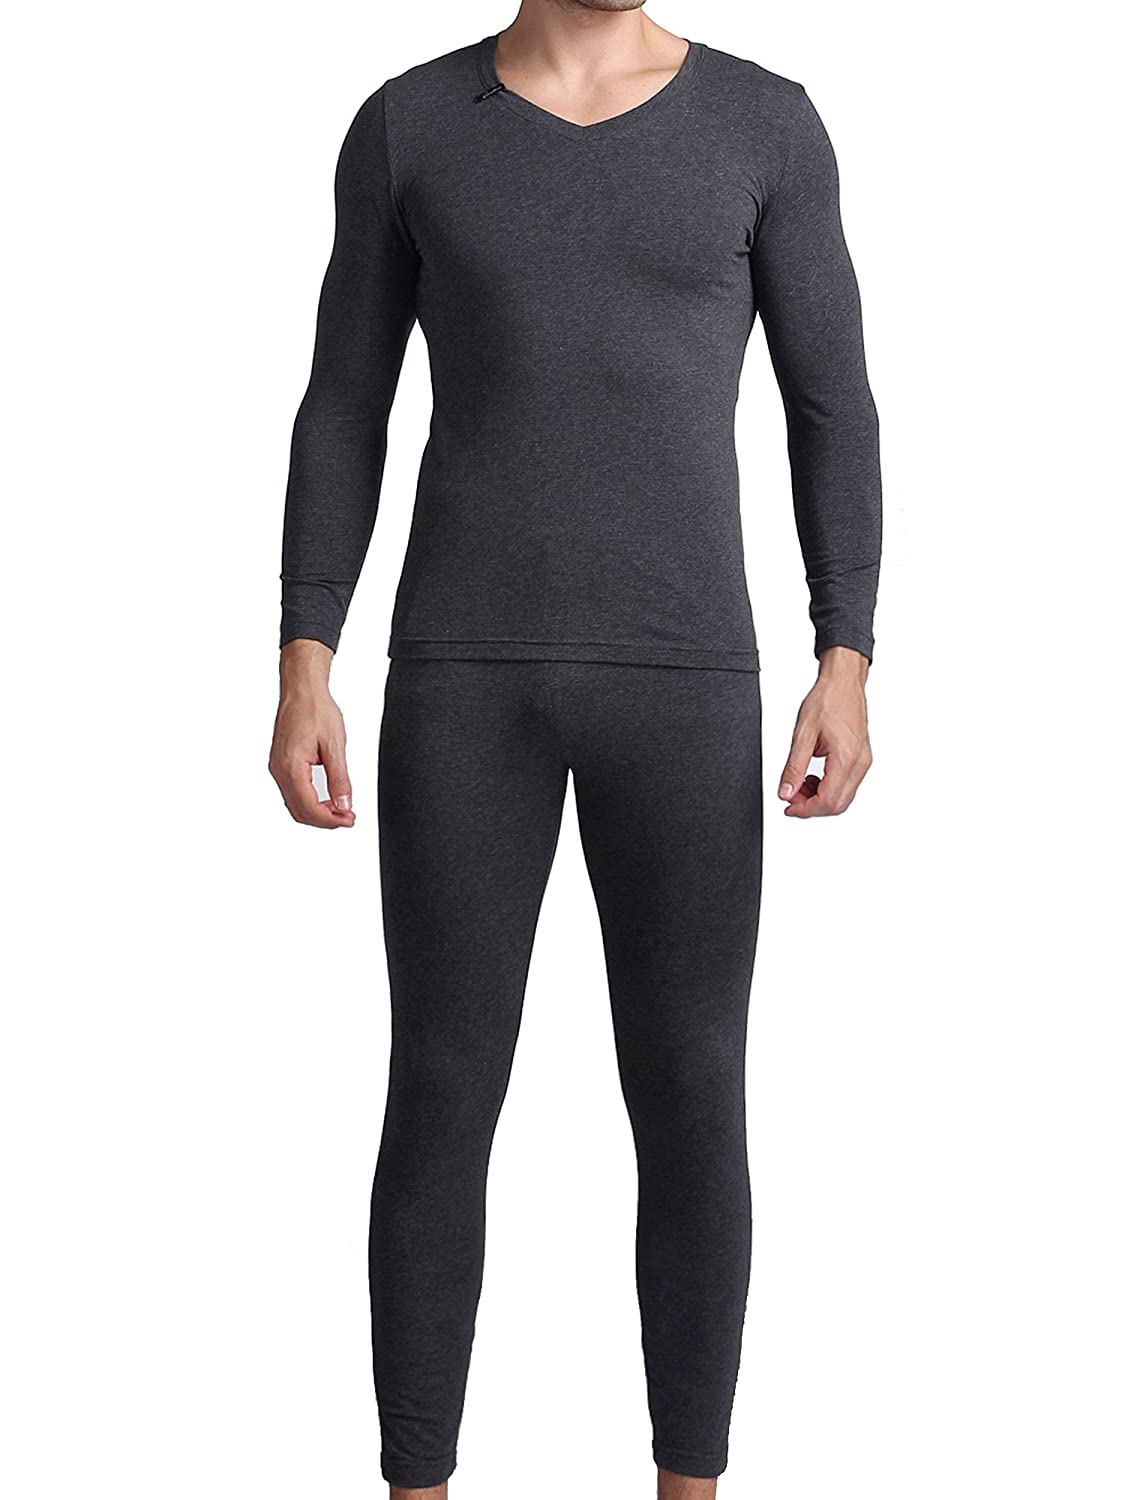 Godsen Men's 2pc Thermal Underwear Set Long John Pants and Tops Carbon Grey) GMW9005